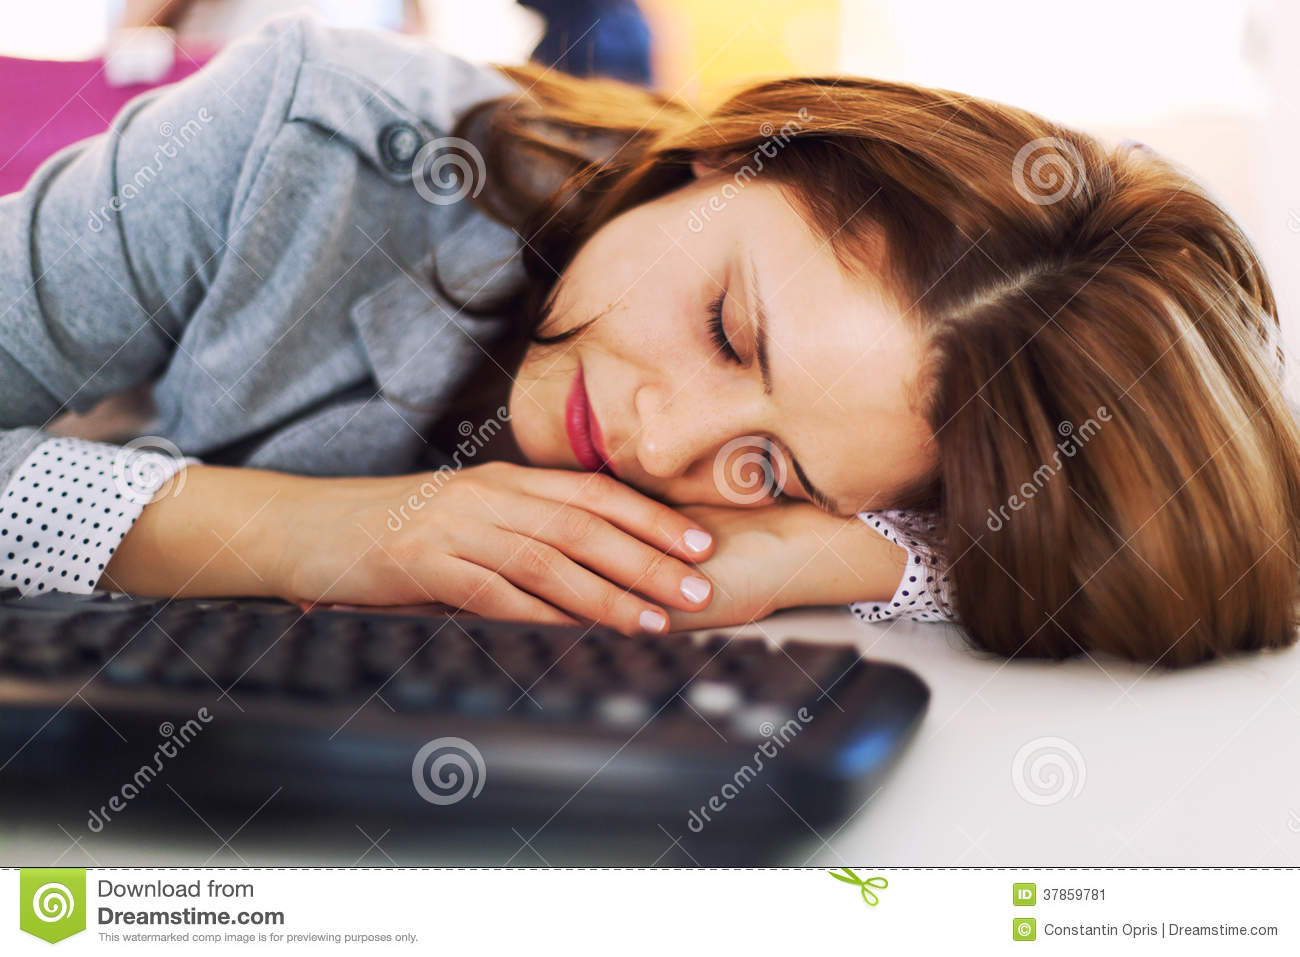 Travel Dog Bed >> Tired Businesswoman Sleeping At Office Stock Image - Image ...